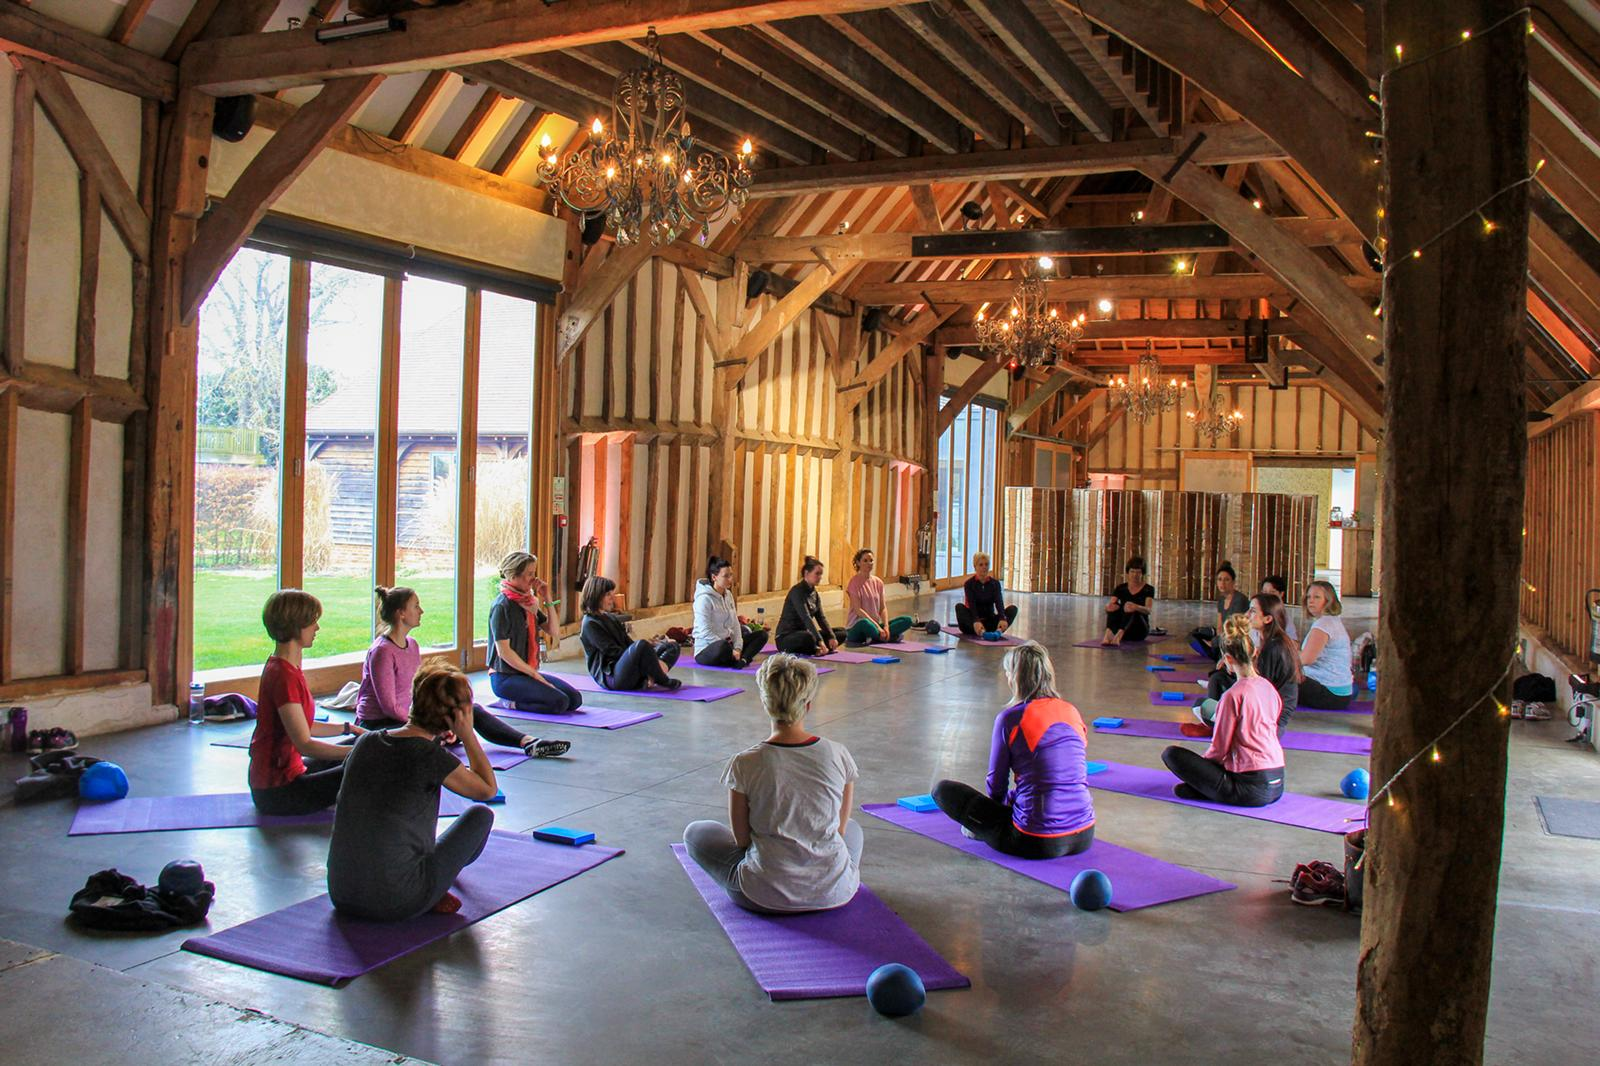 Southend Barns, Pilates and Nutritional Day Retreat